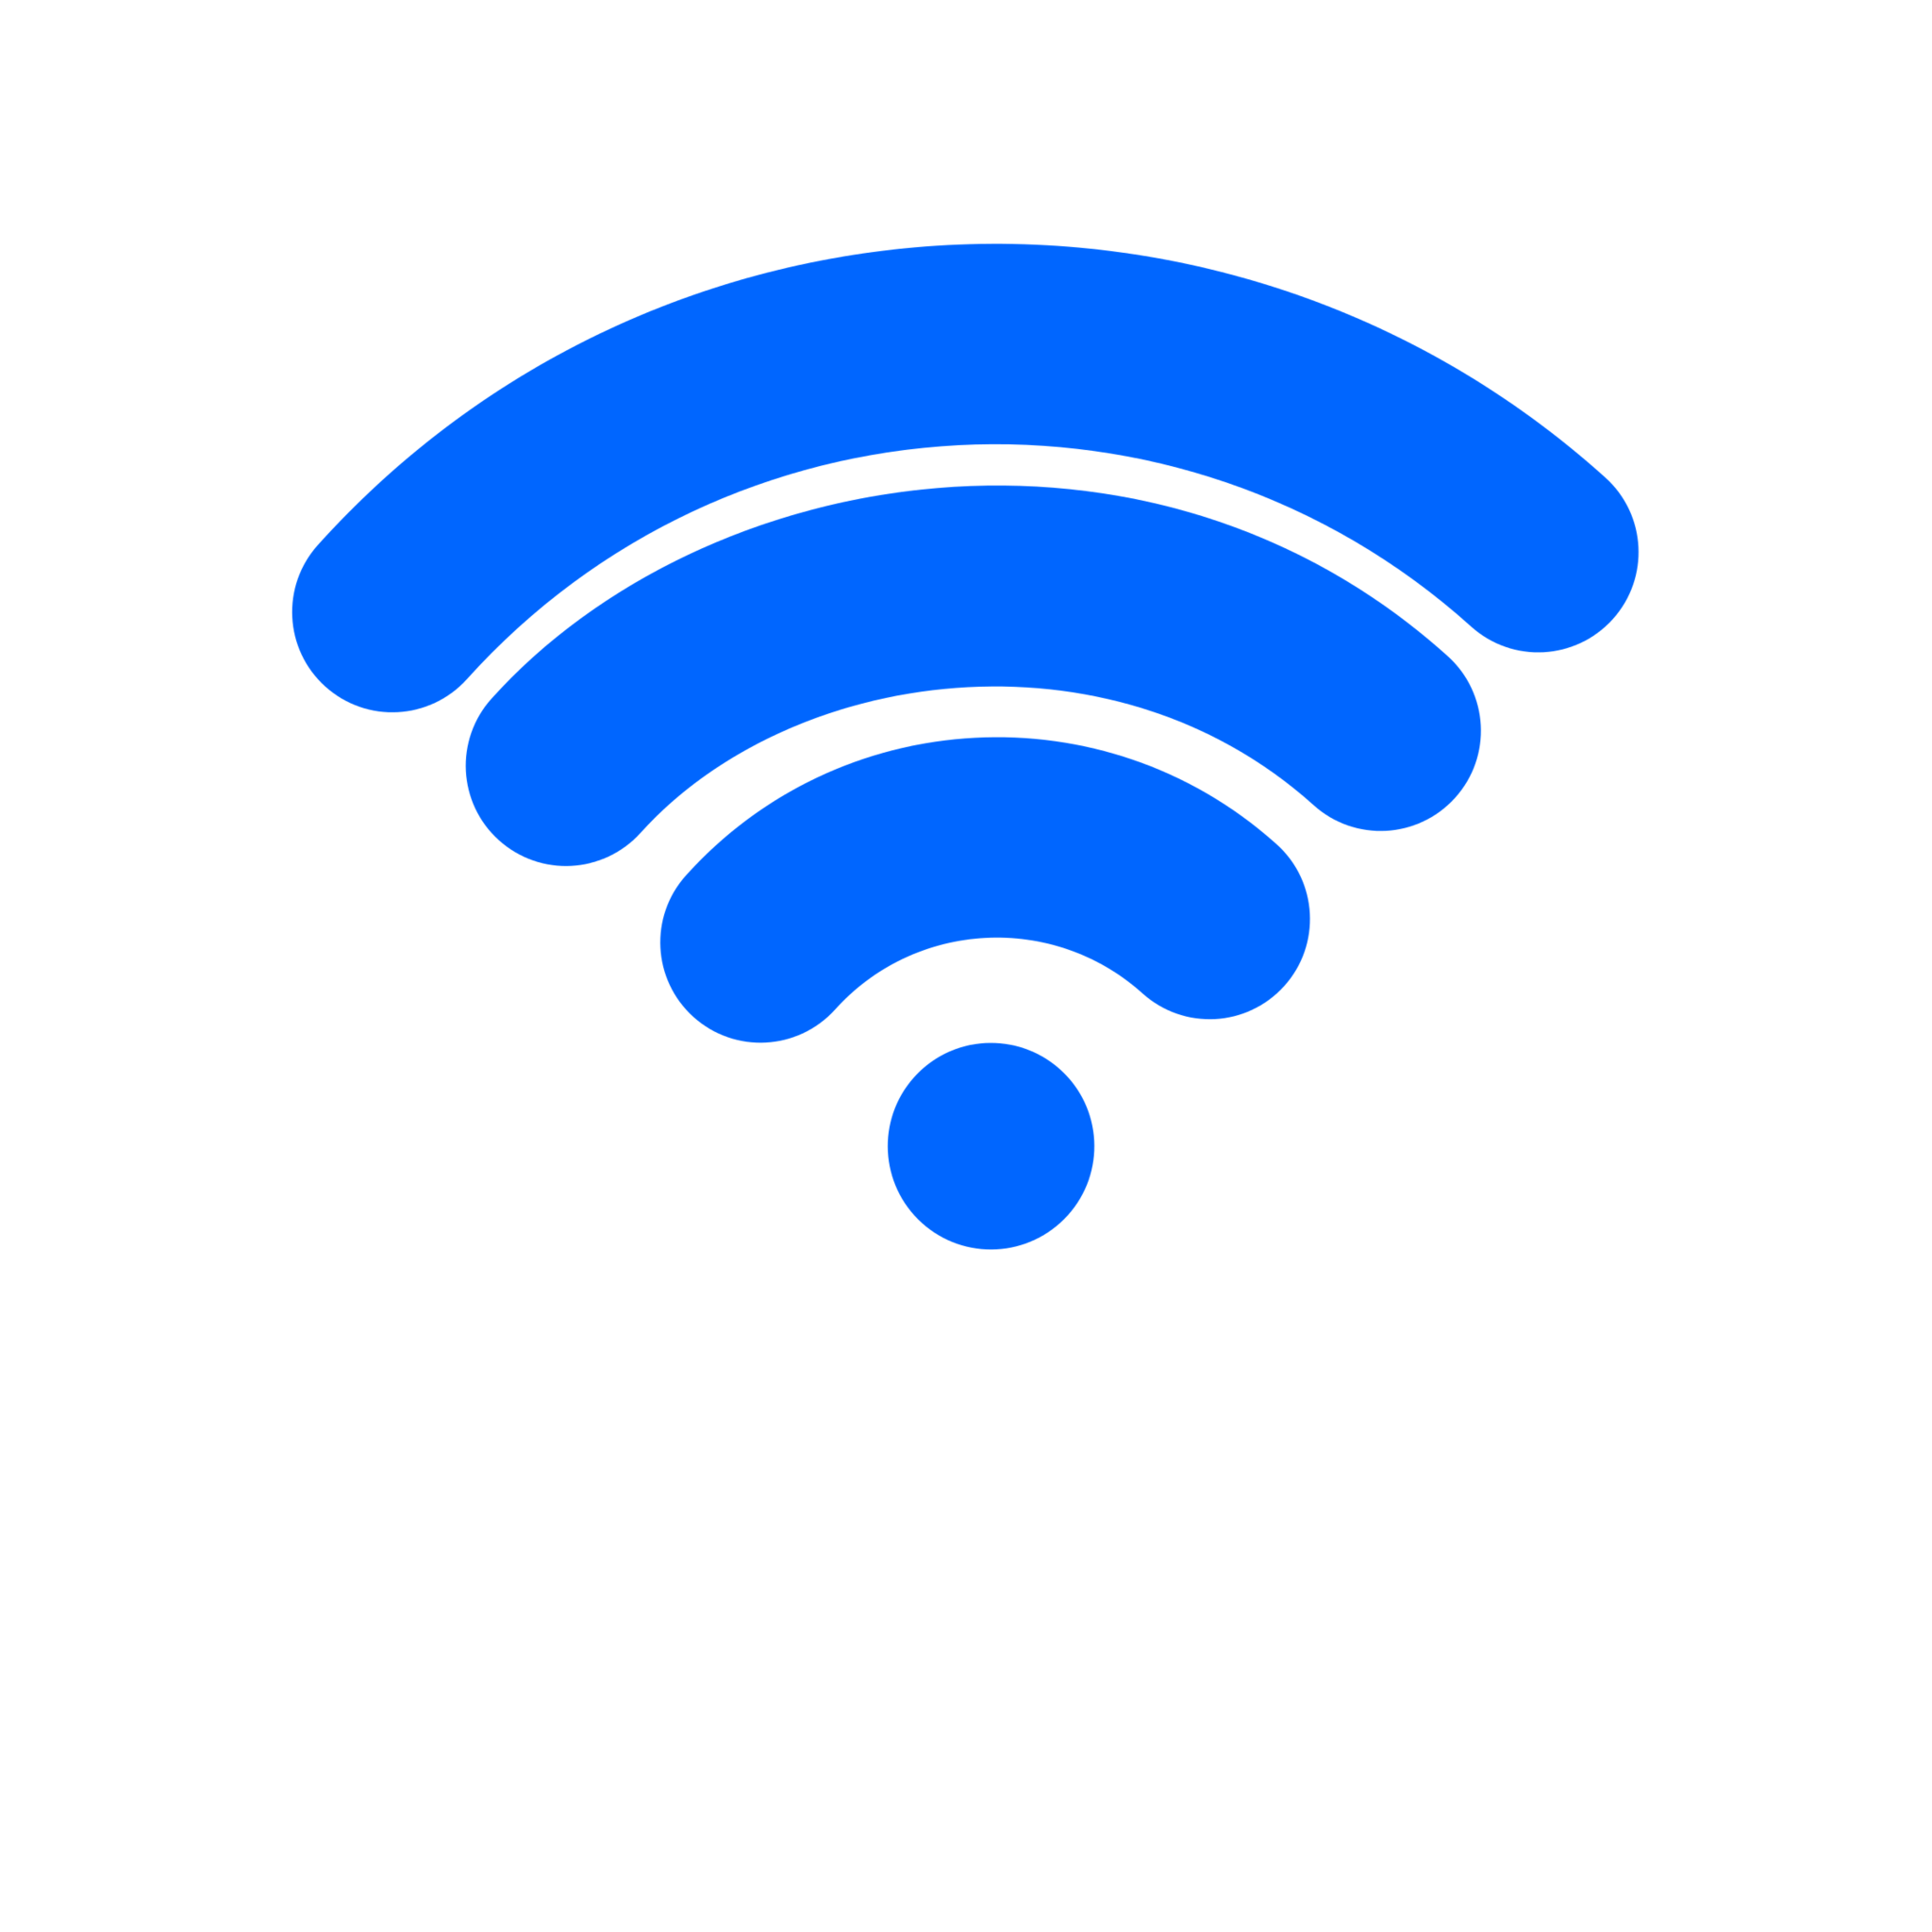 logo wifi android central #13656